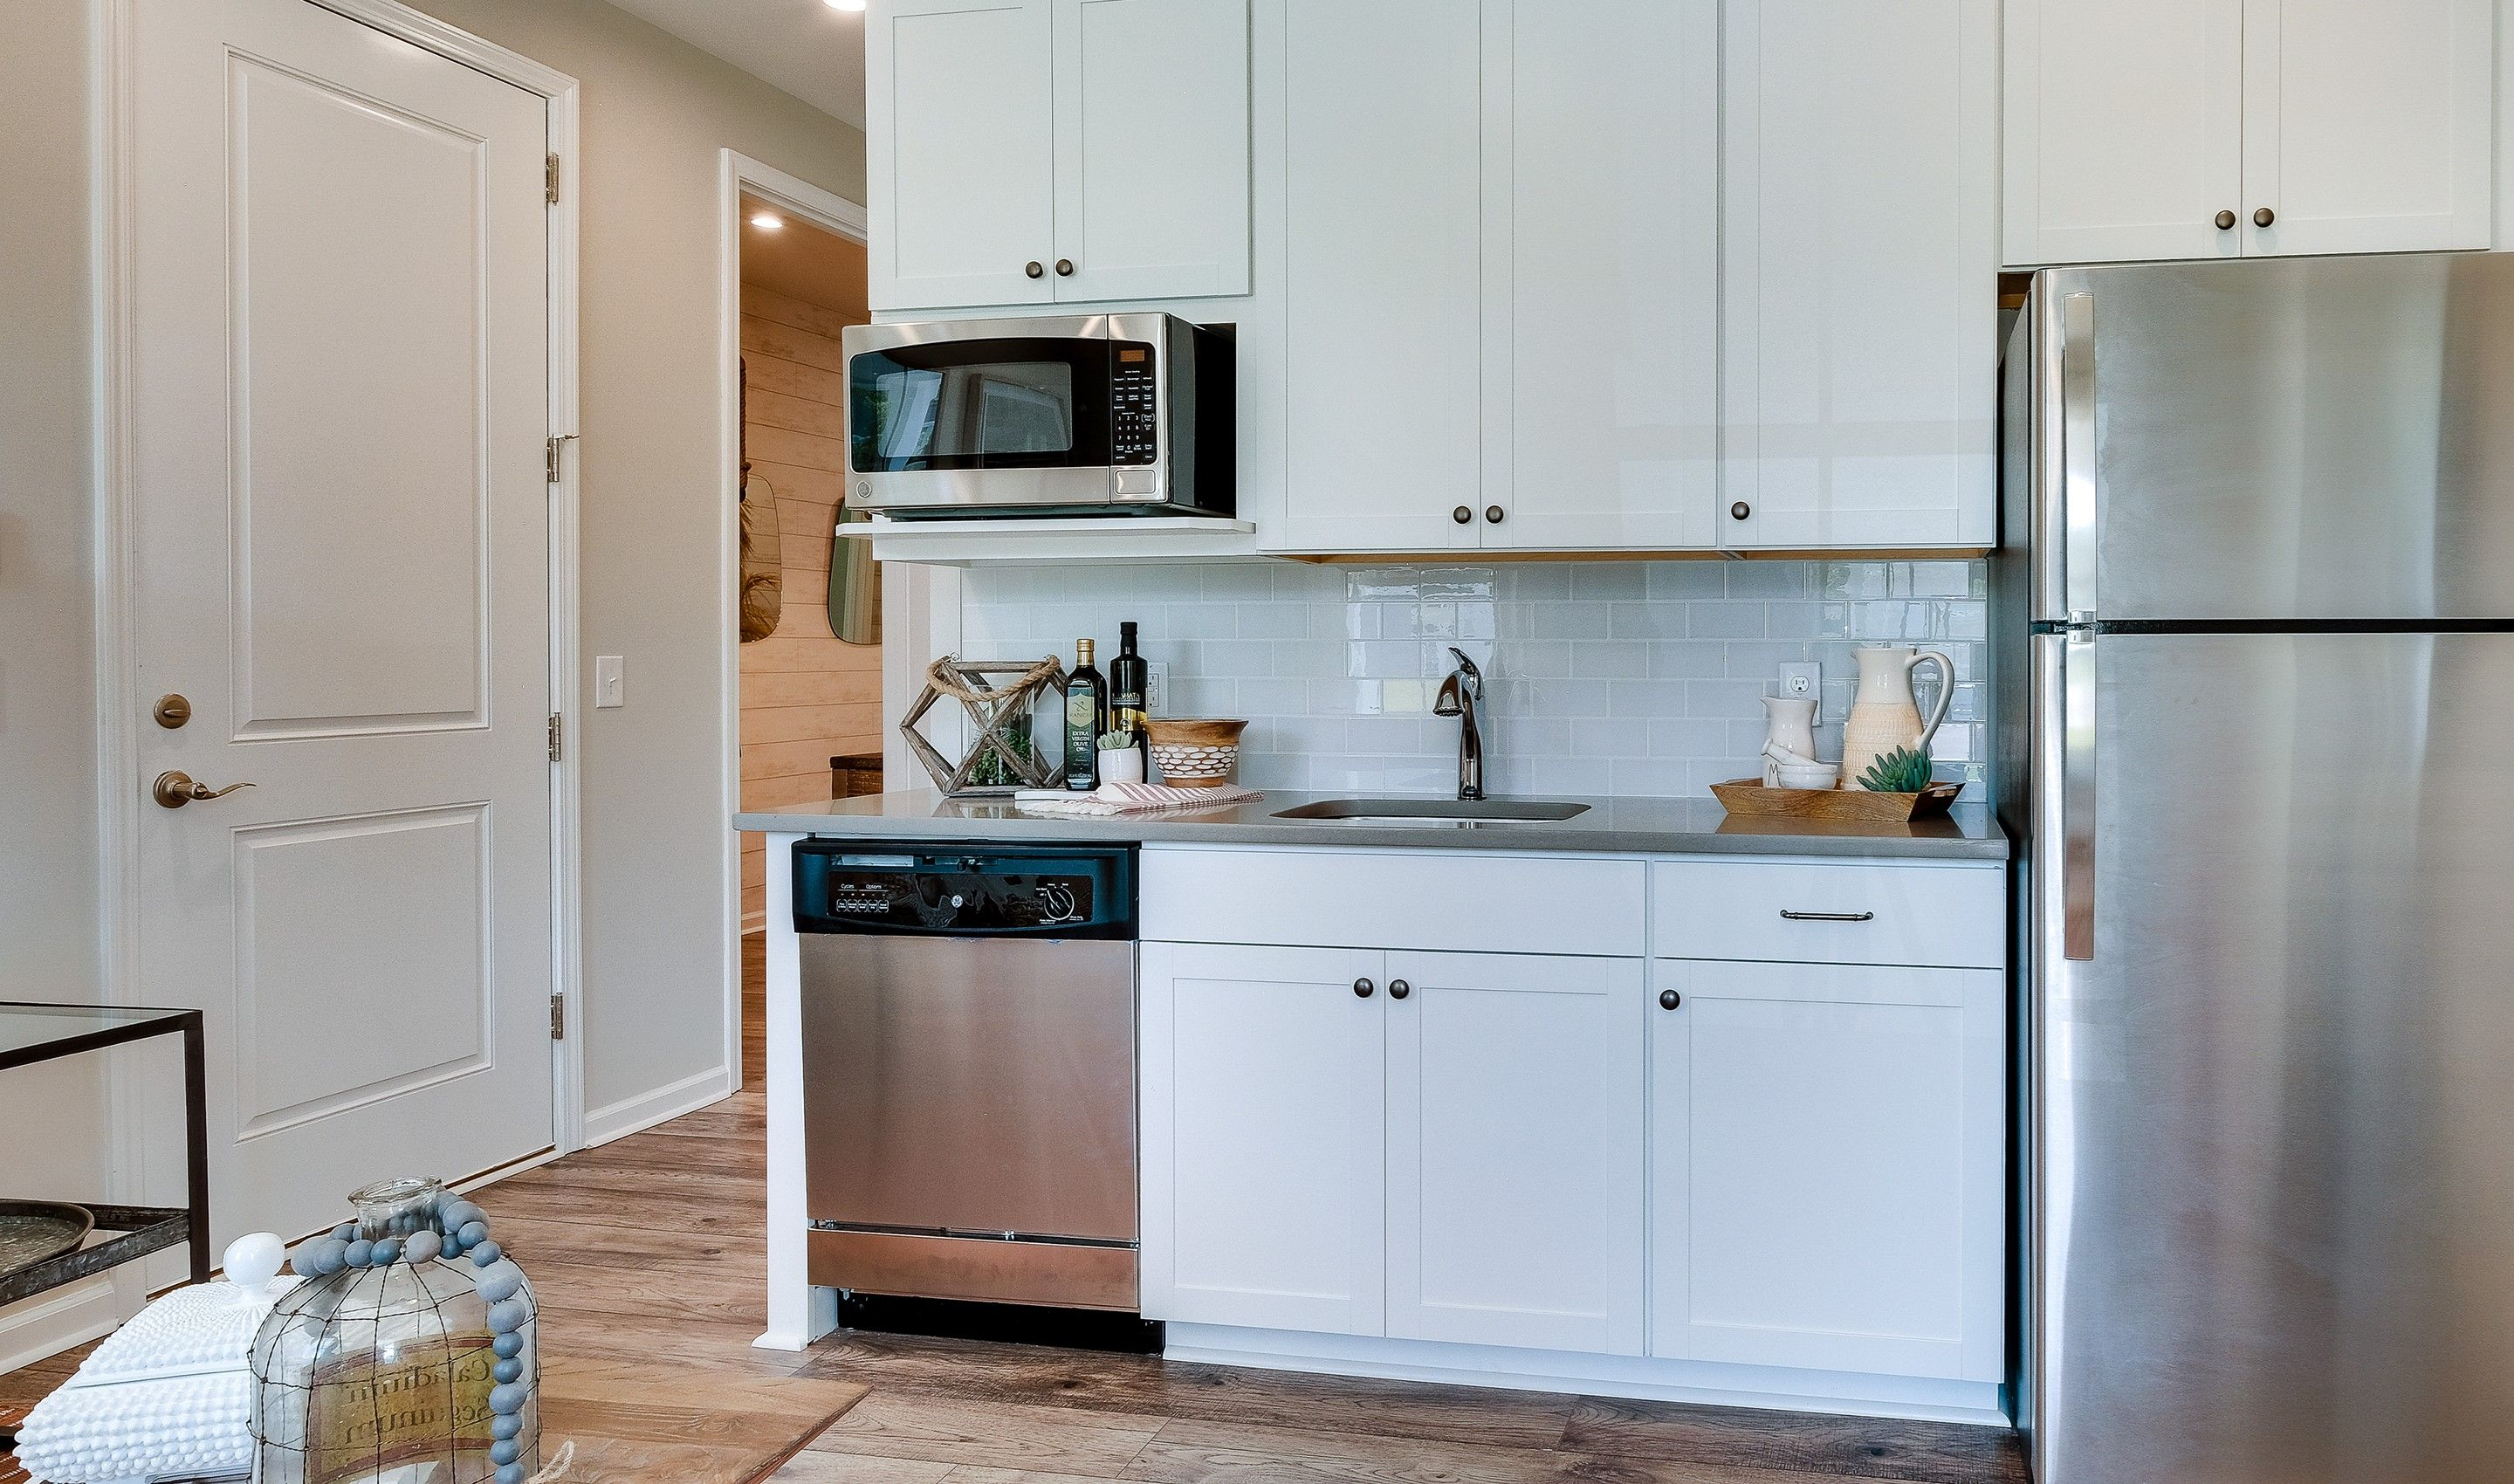 Kitchen featured in the Palmera II By K. Hovnanian® Homes in Hilton Head, SC